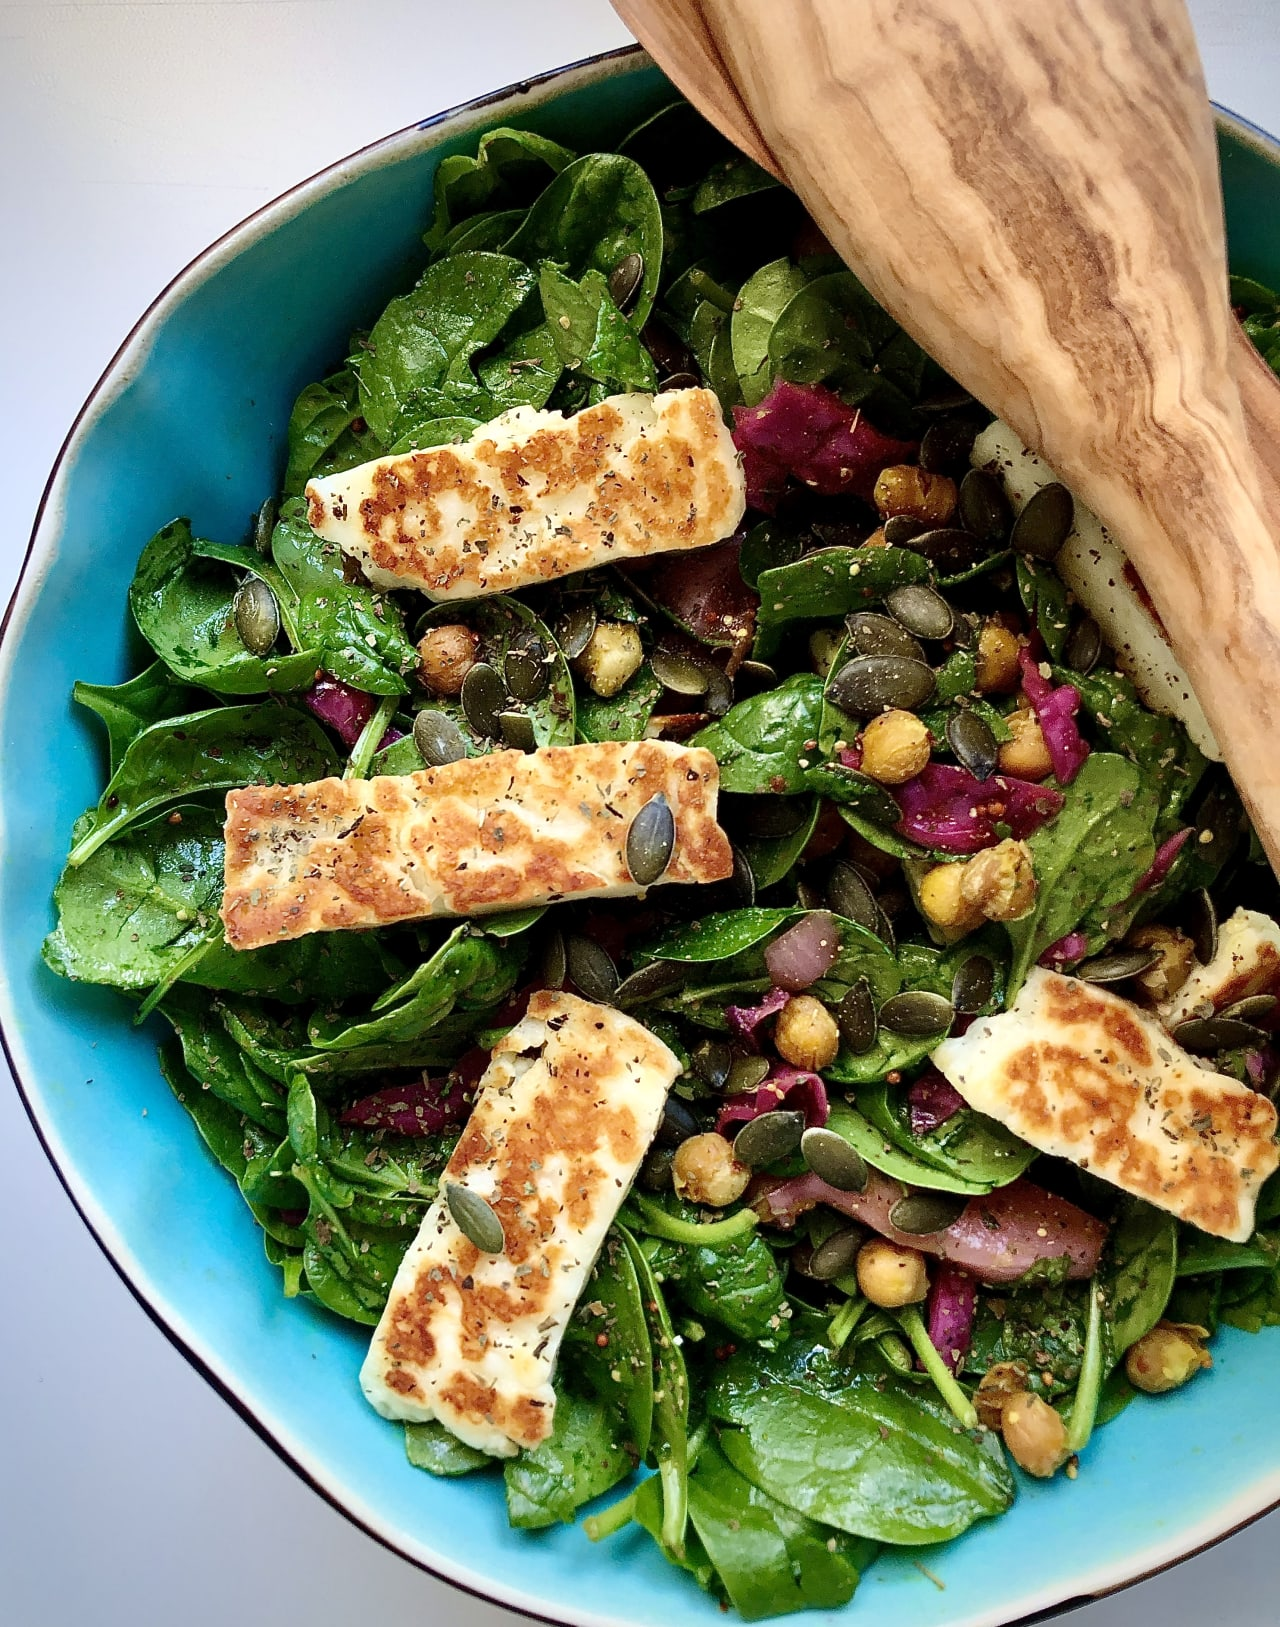 Roasted Chickpea, Pan Fried Halloumi, Spinach Salad